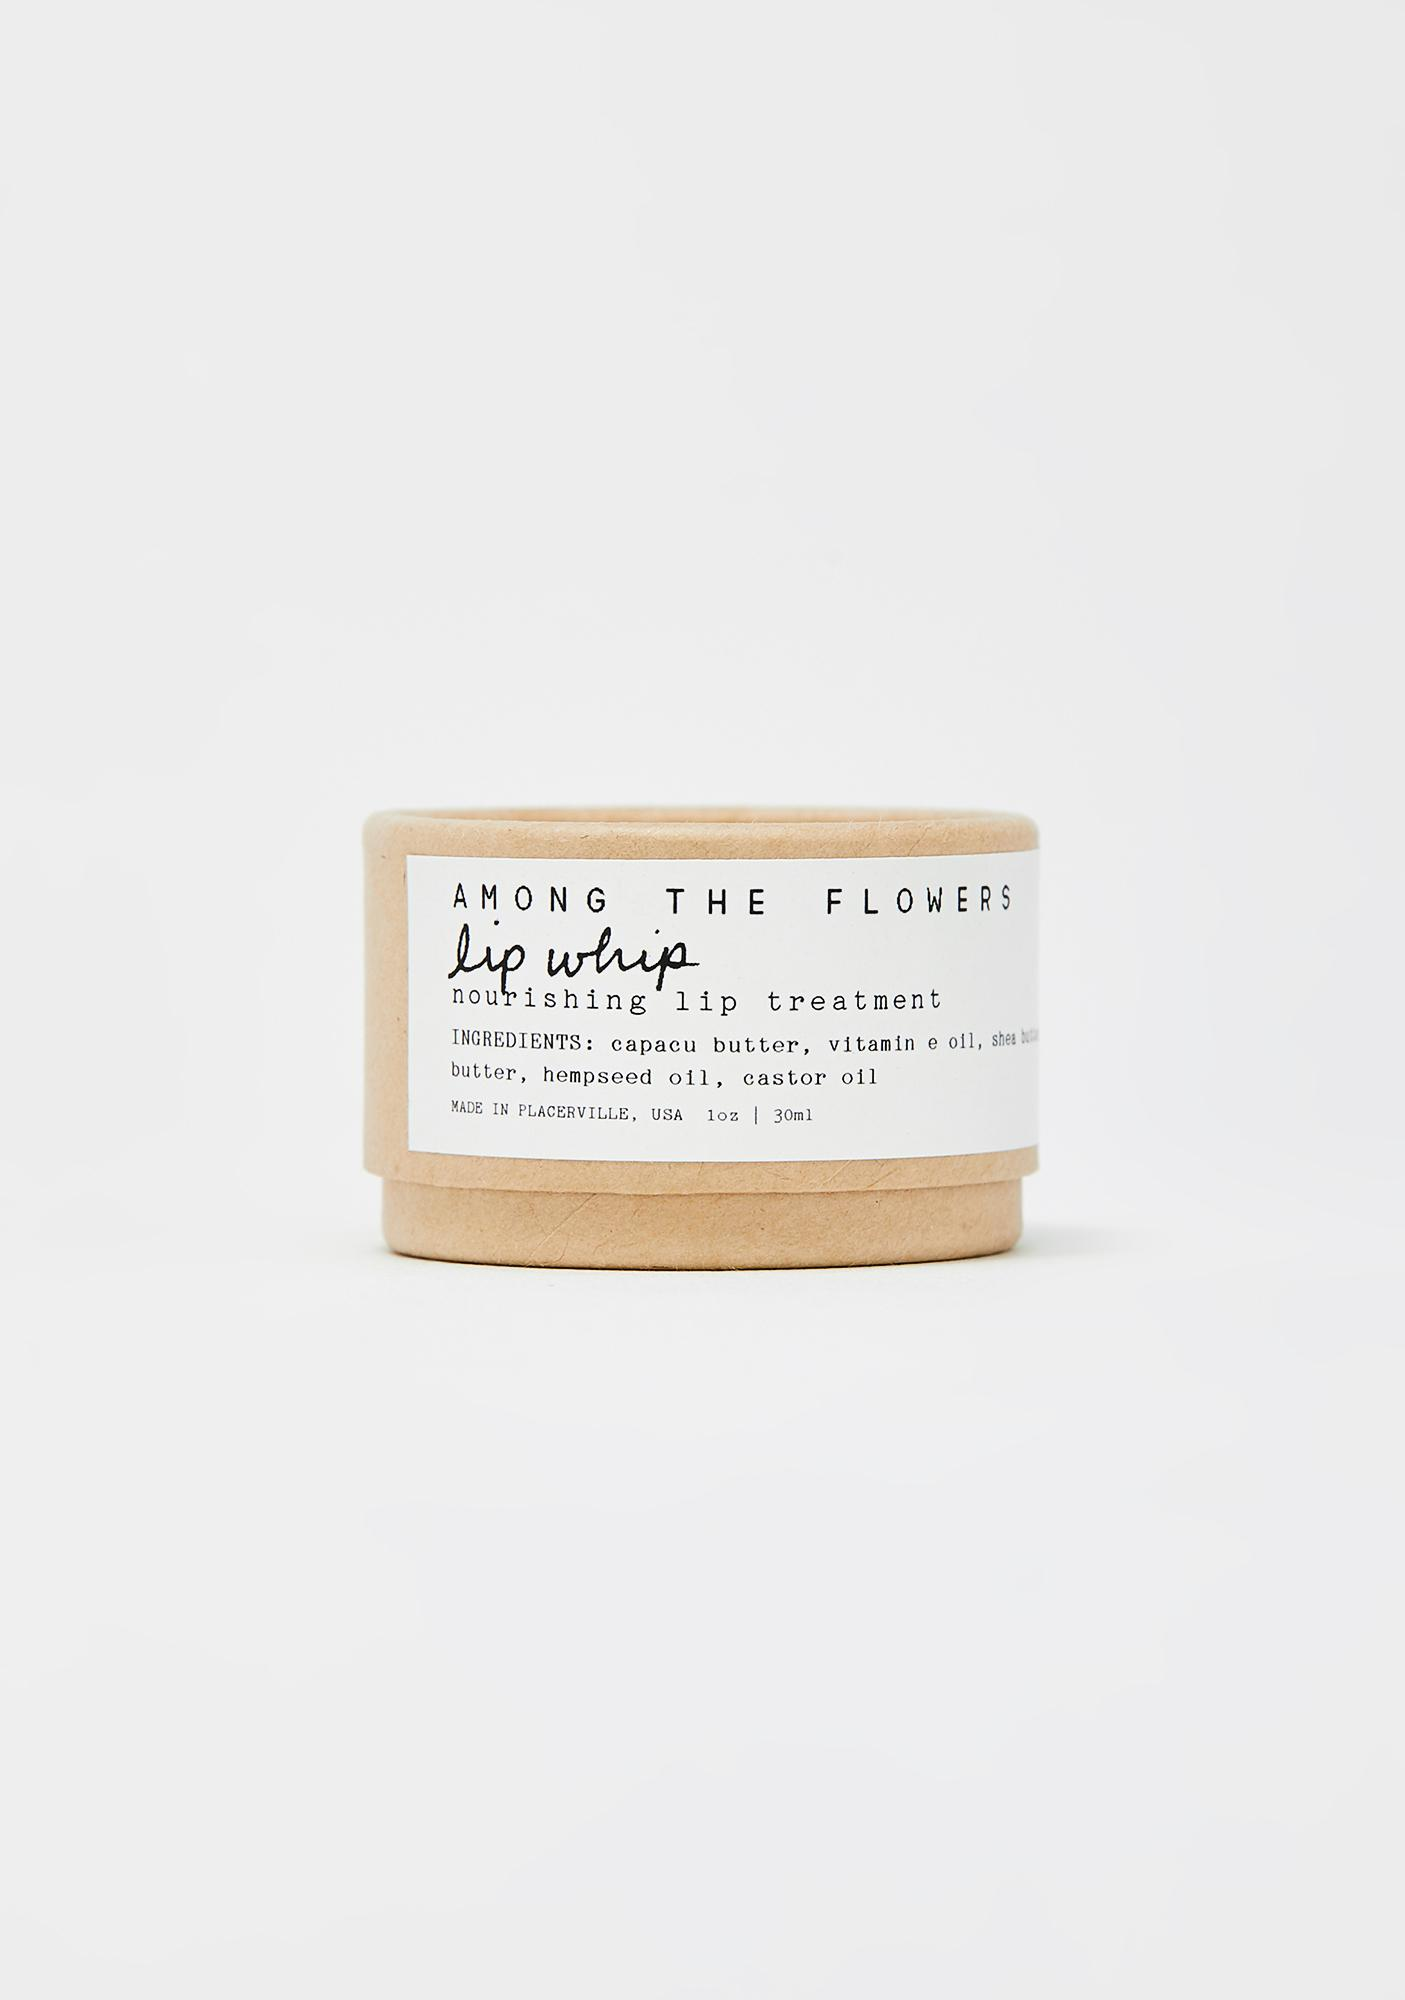 Among The Flowers Herb Infused Lip Whip